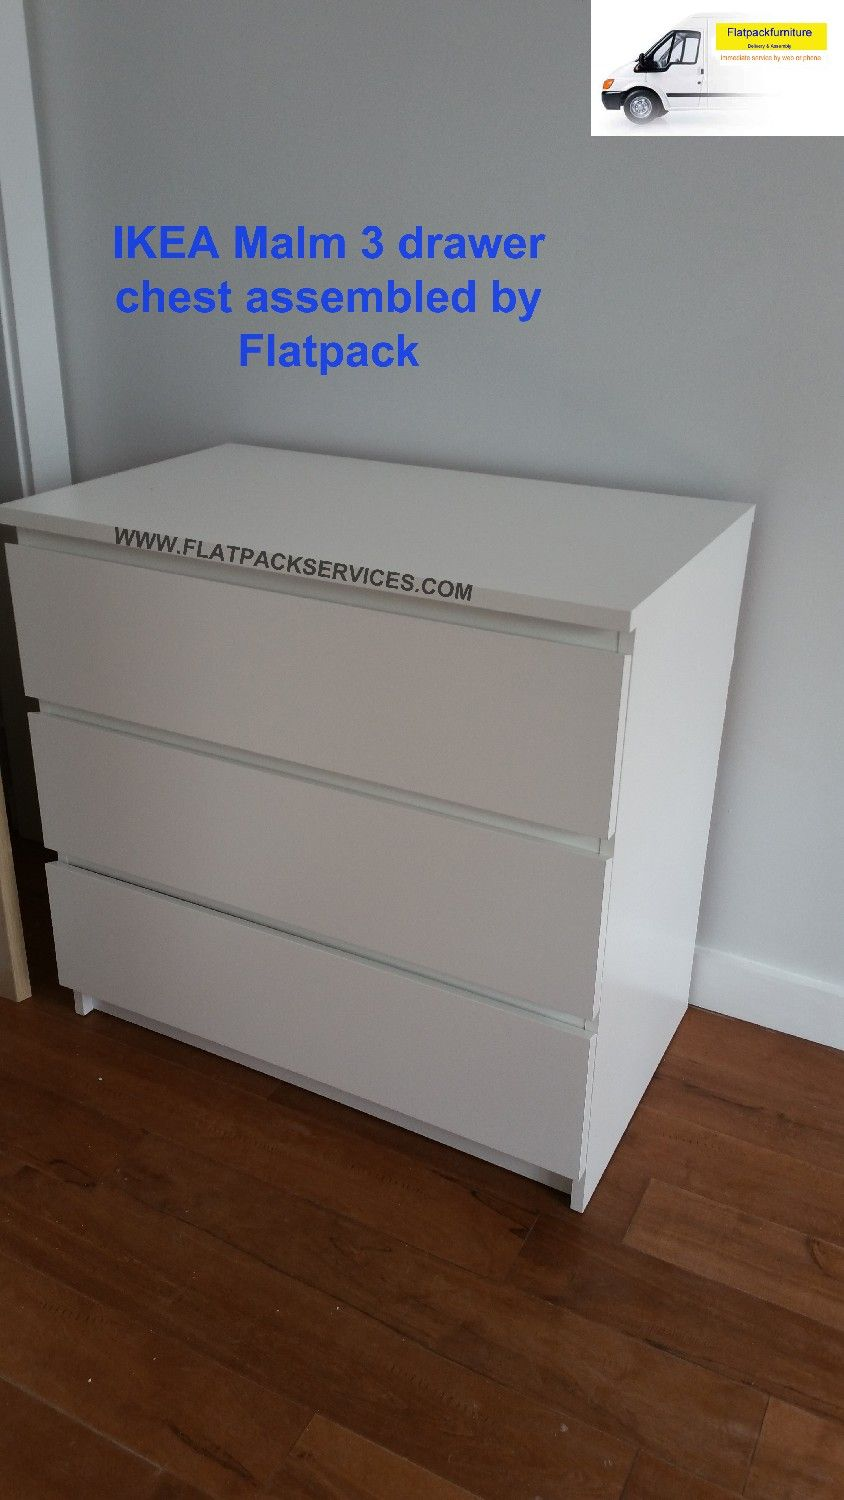 Ikea malm 3 drawer chest article number best for Ikea article number